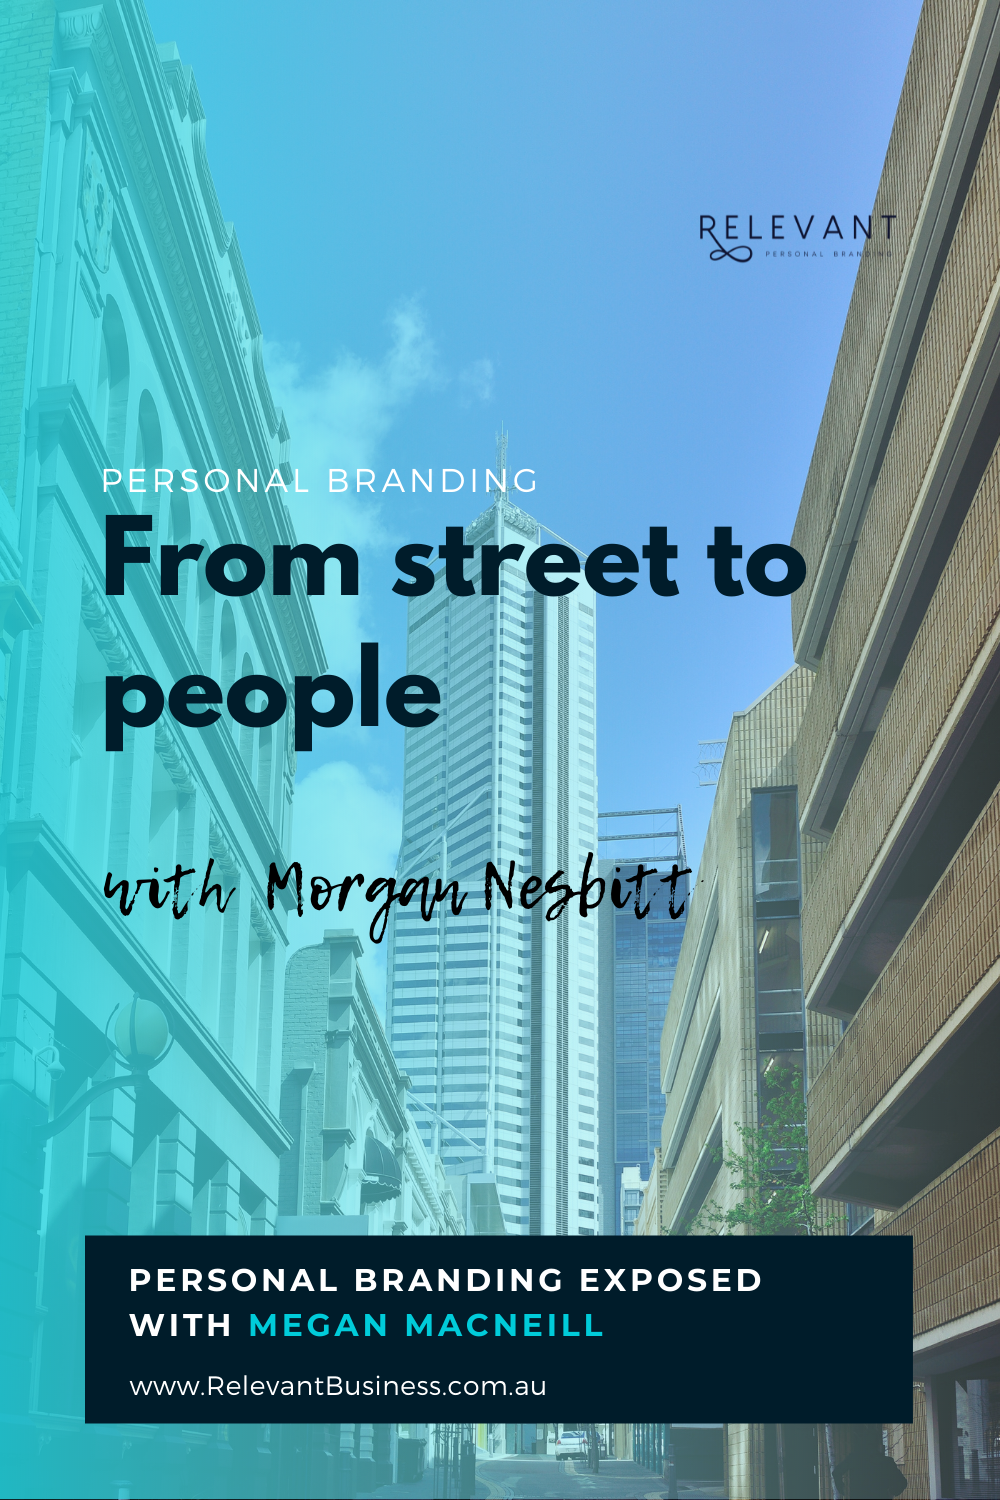 From street to people with Morgan Nesbitt